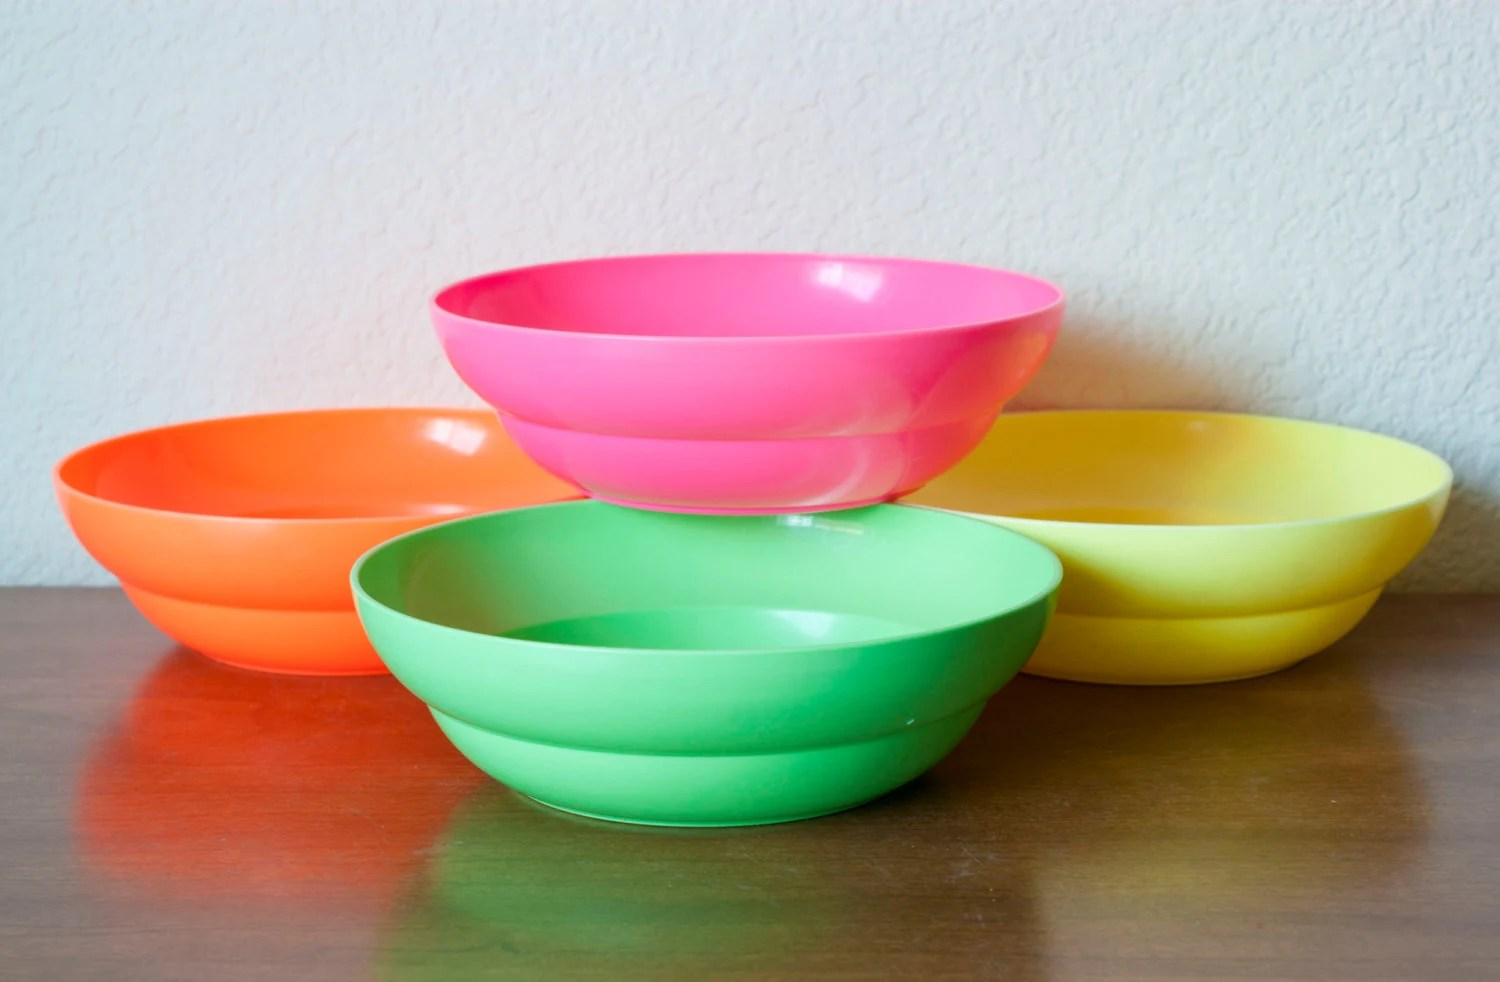 Neon Tupperware Cereal Bowls Green Orange Pink Yellow Set of